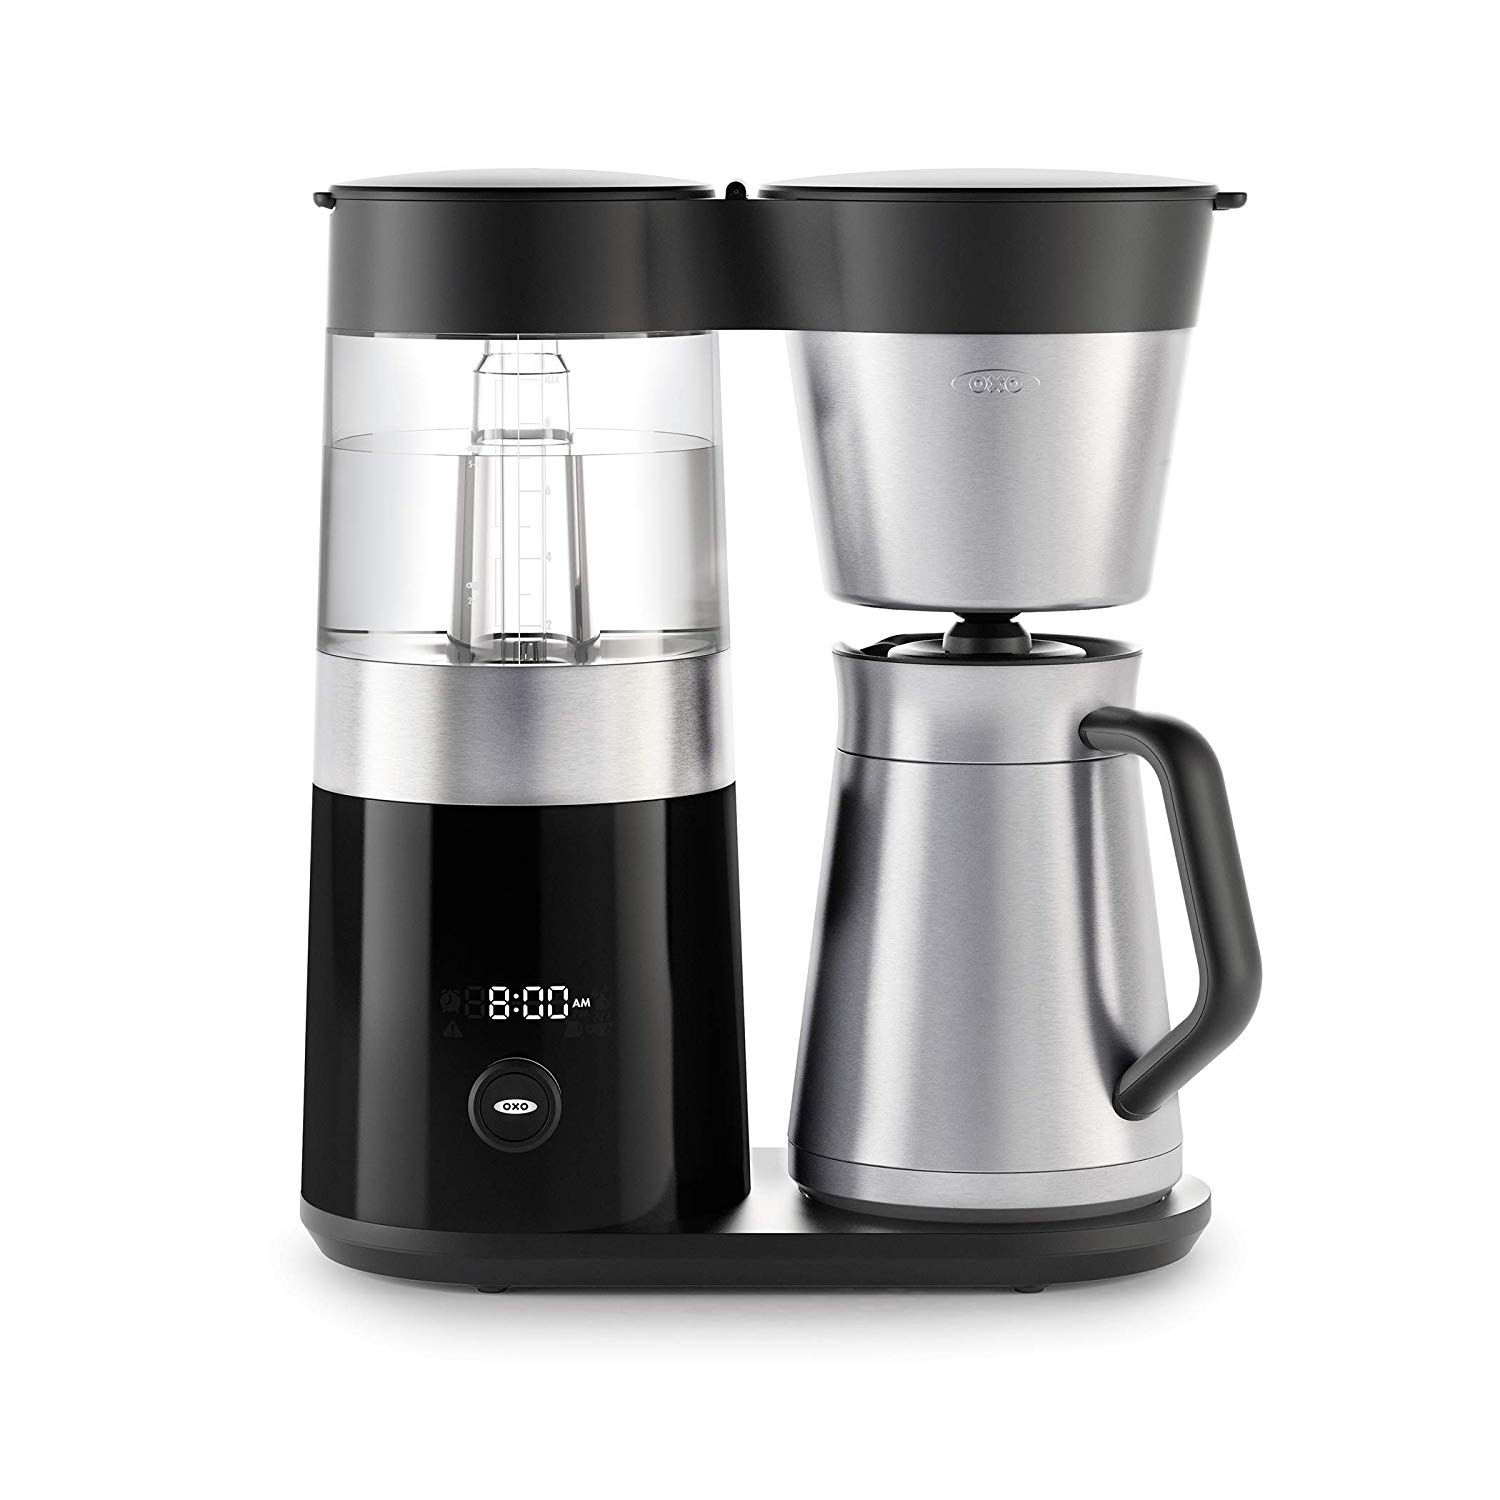 Oxo on barista brain 9-cup coffee maker